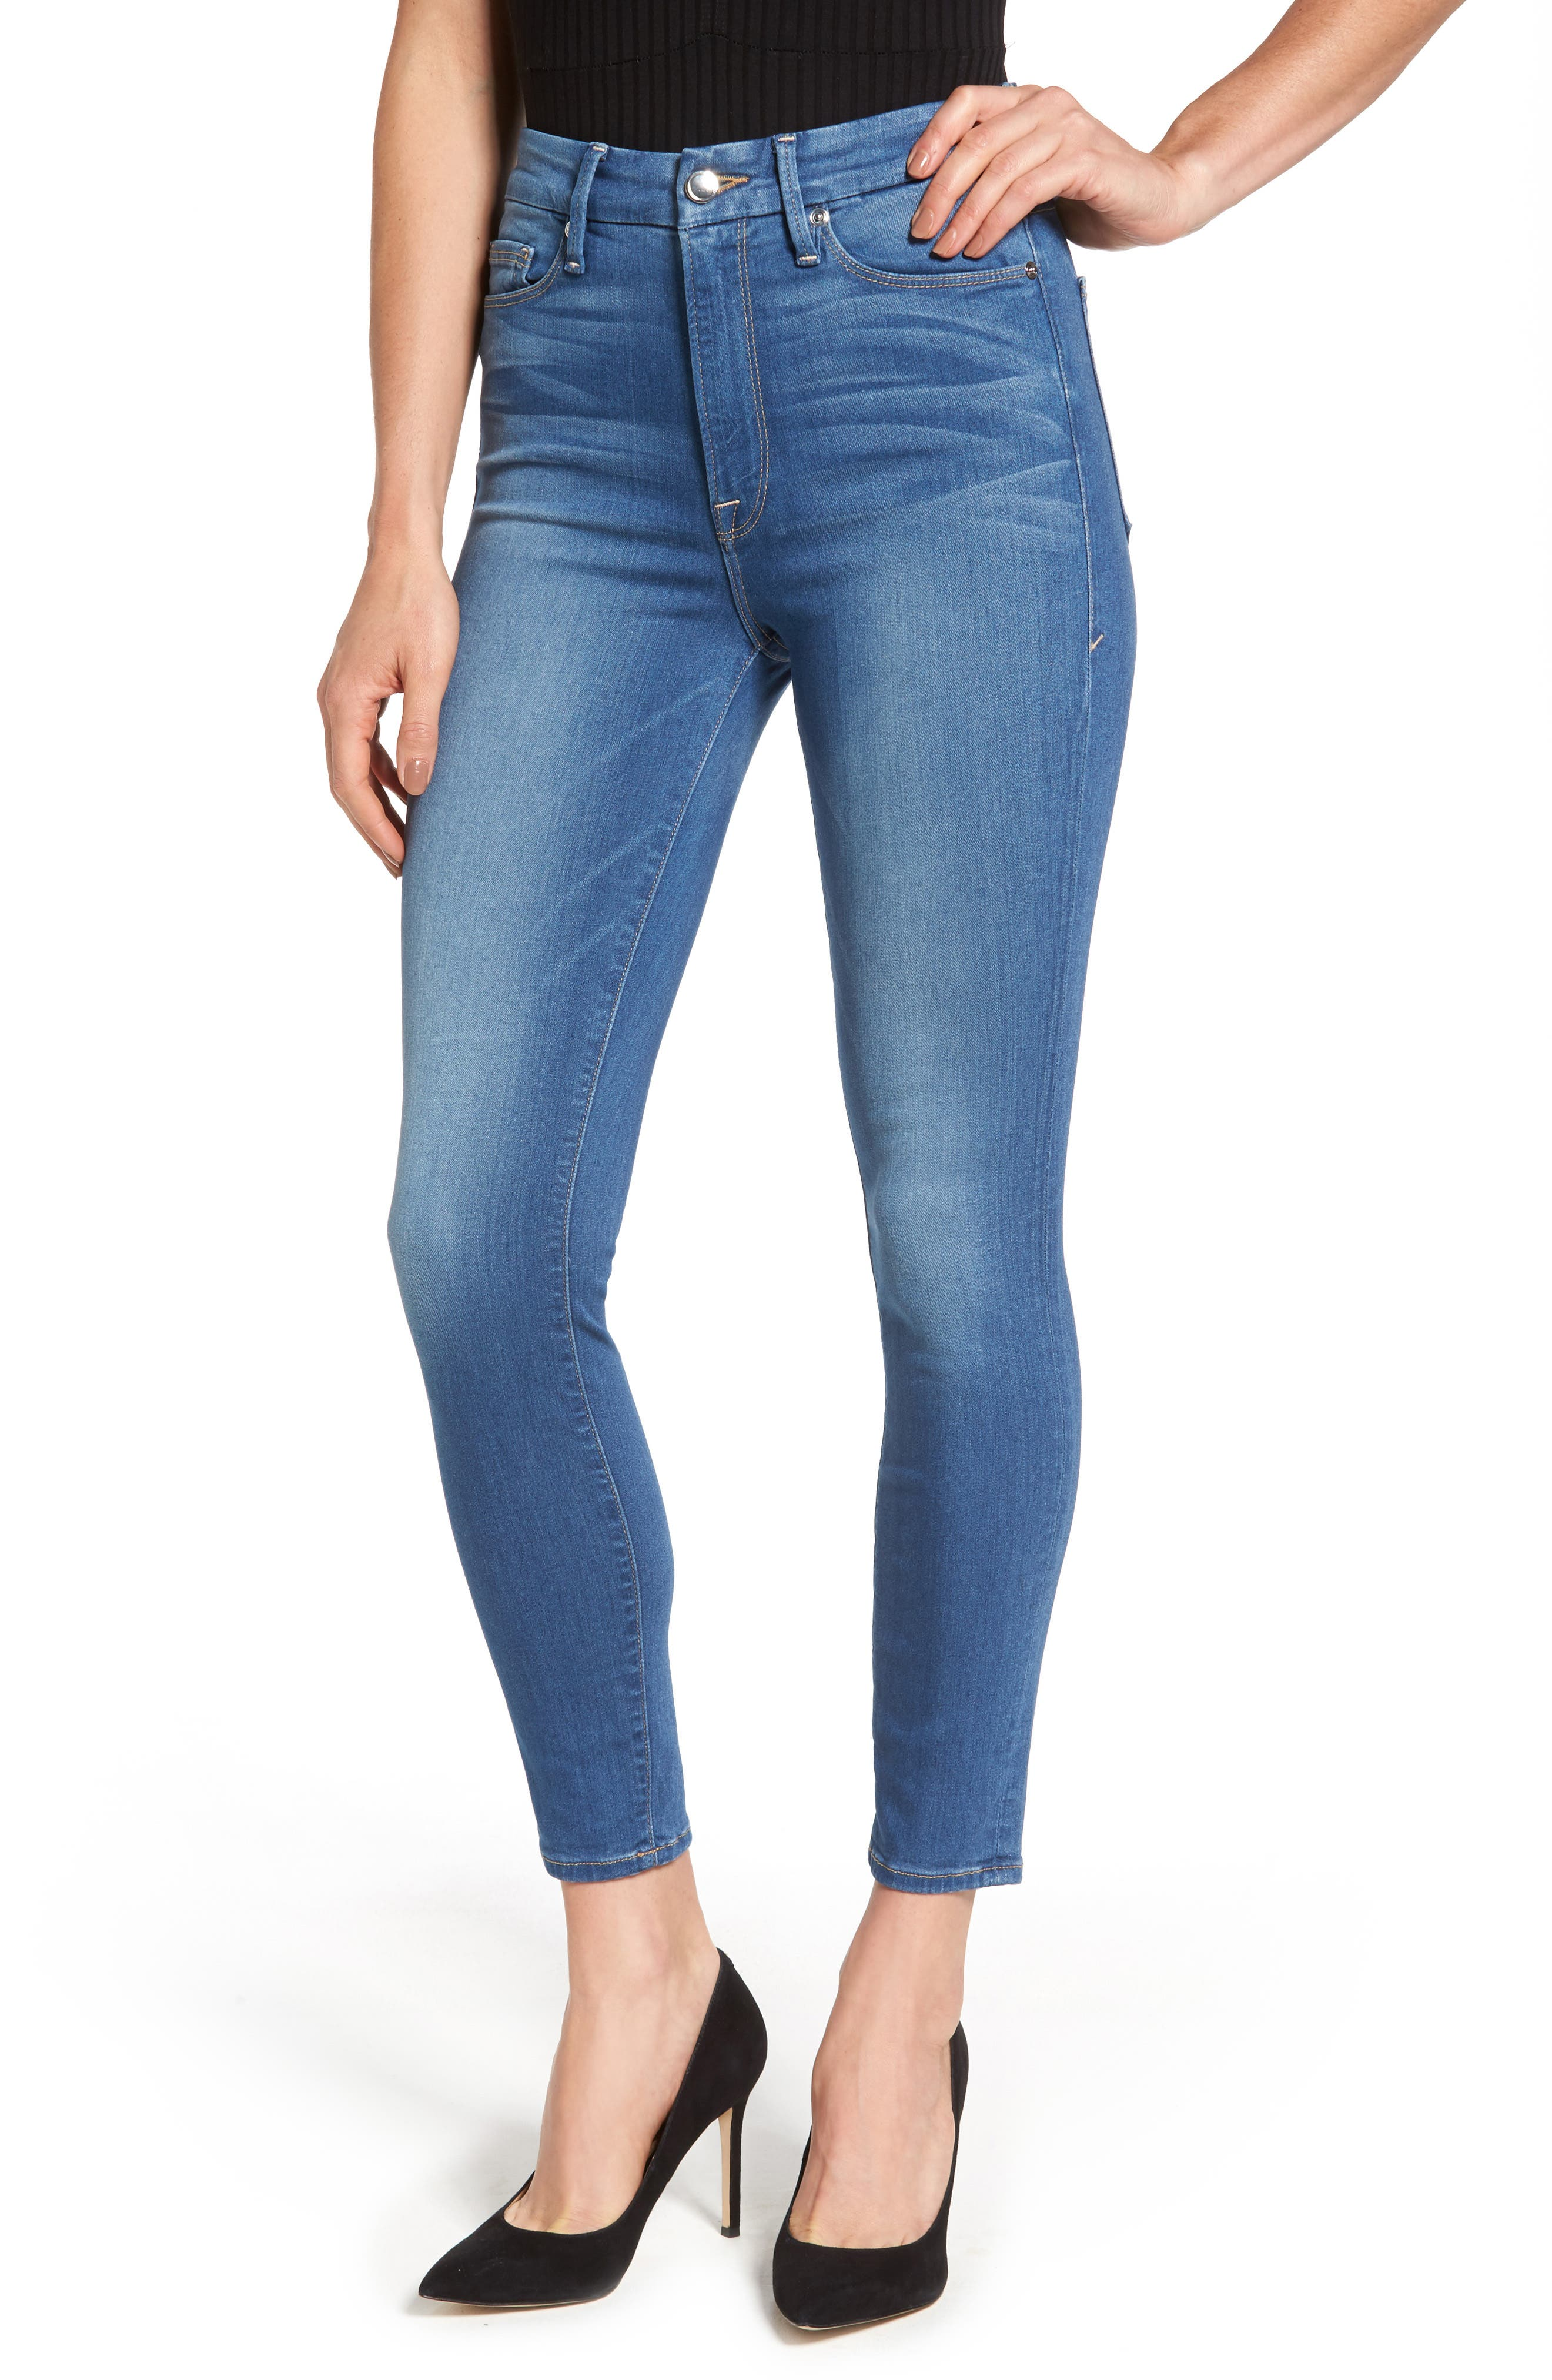 Alternate Image 1 Selected - Good American Good Waist High Waist Crop Skinny Jeans (Blue 056) (Extended Sizes)